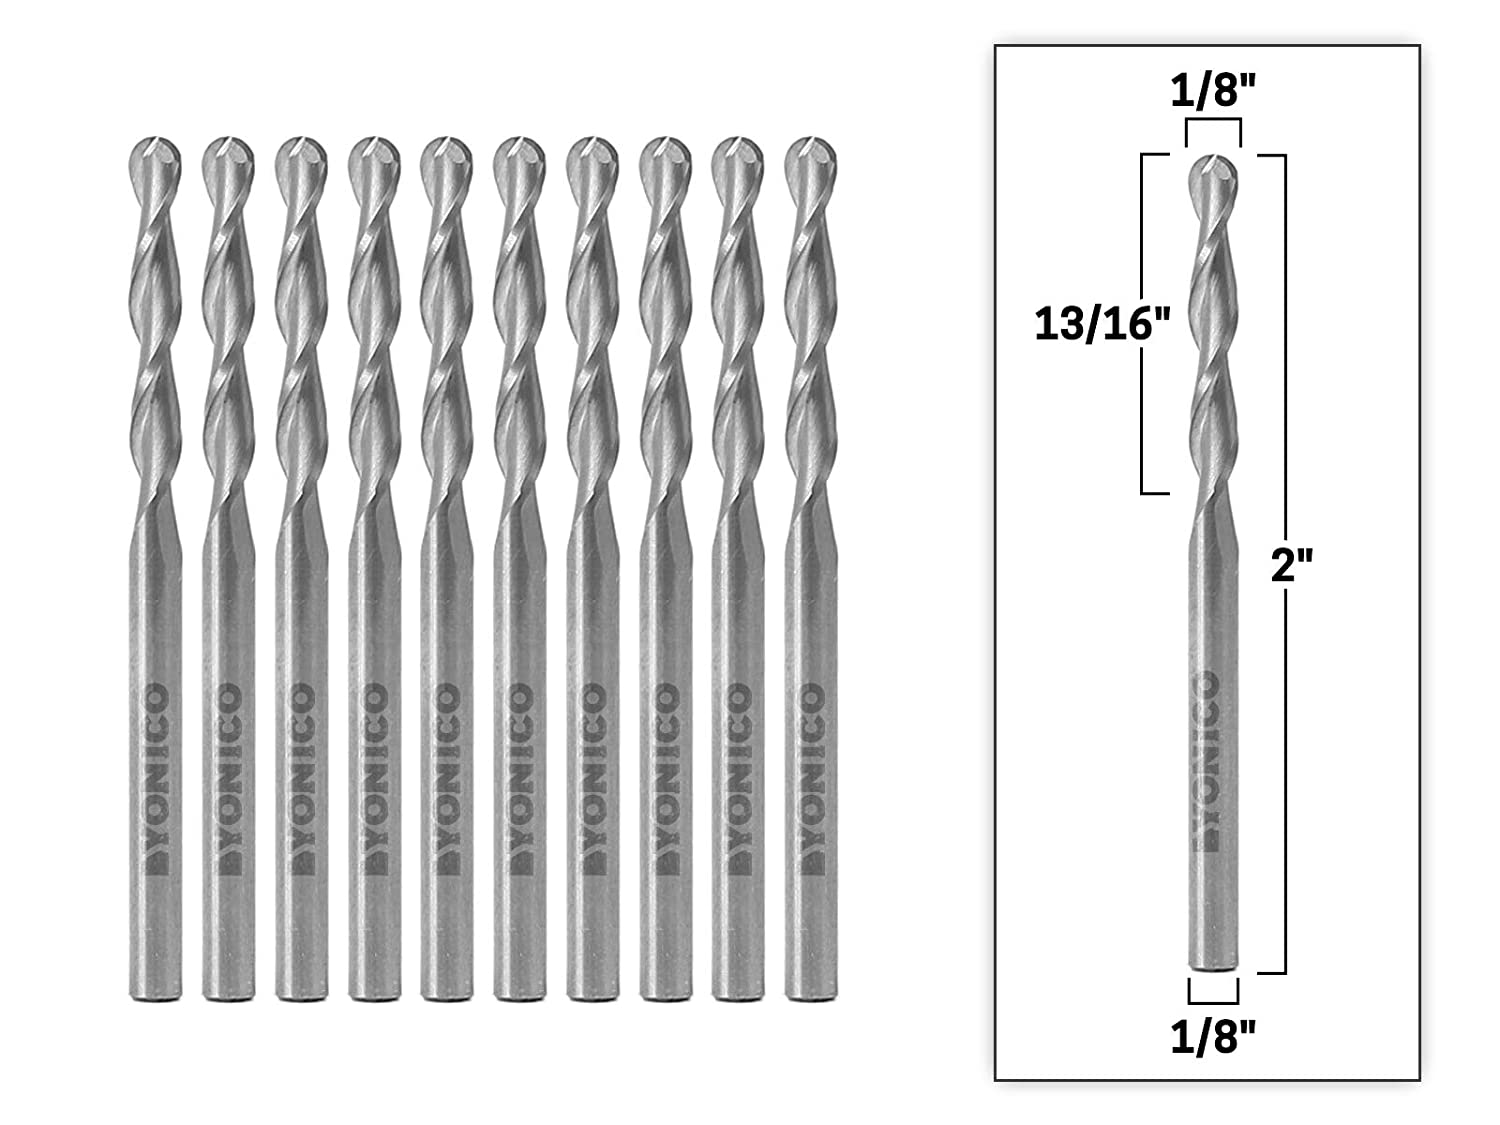 Yonico 34201 SC 10PK 1 8 Inch Dia. 2 Flute Ball Nose Spiral End Mill CNC Router Bit 10 Pack 1 8 Inch Shank